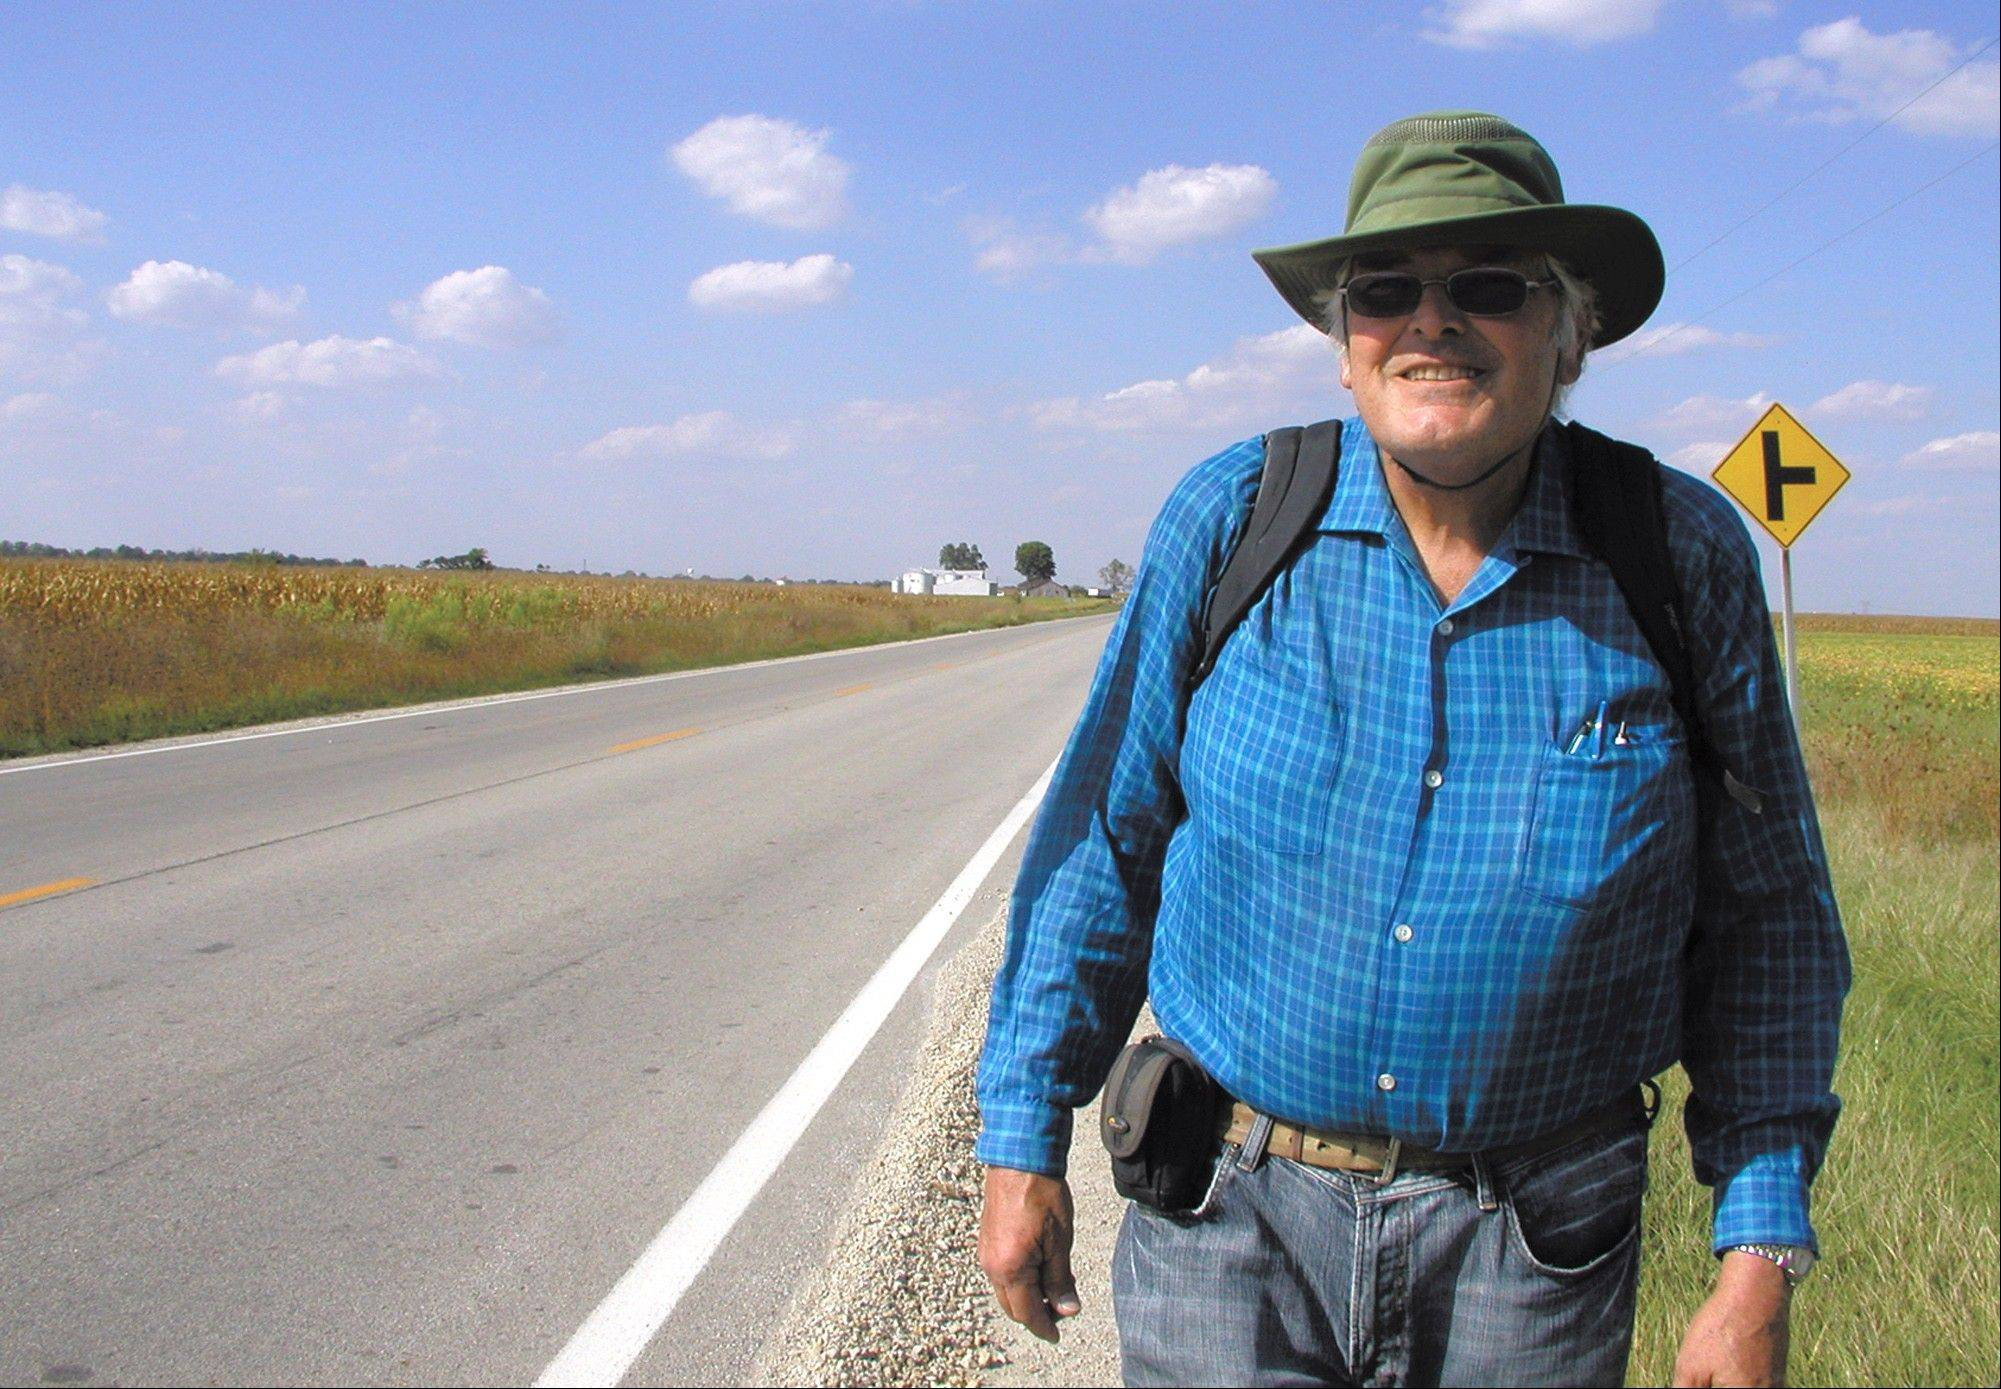 Retired anthropologist Bill Fairbanks heads south on Route 32 after making a brief stop in Stewardson, Ill. Fairbanks is walking cross-country to find out more about America's inhabitants and what drives them. He started his trip in California in 2009, and his final destination is Boston.